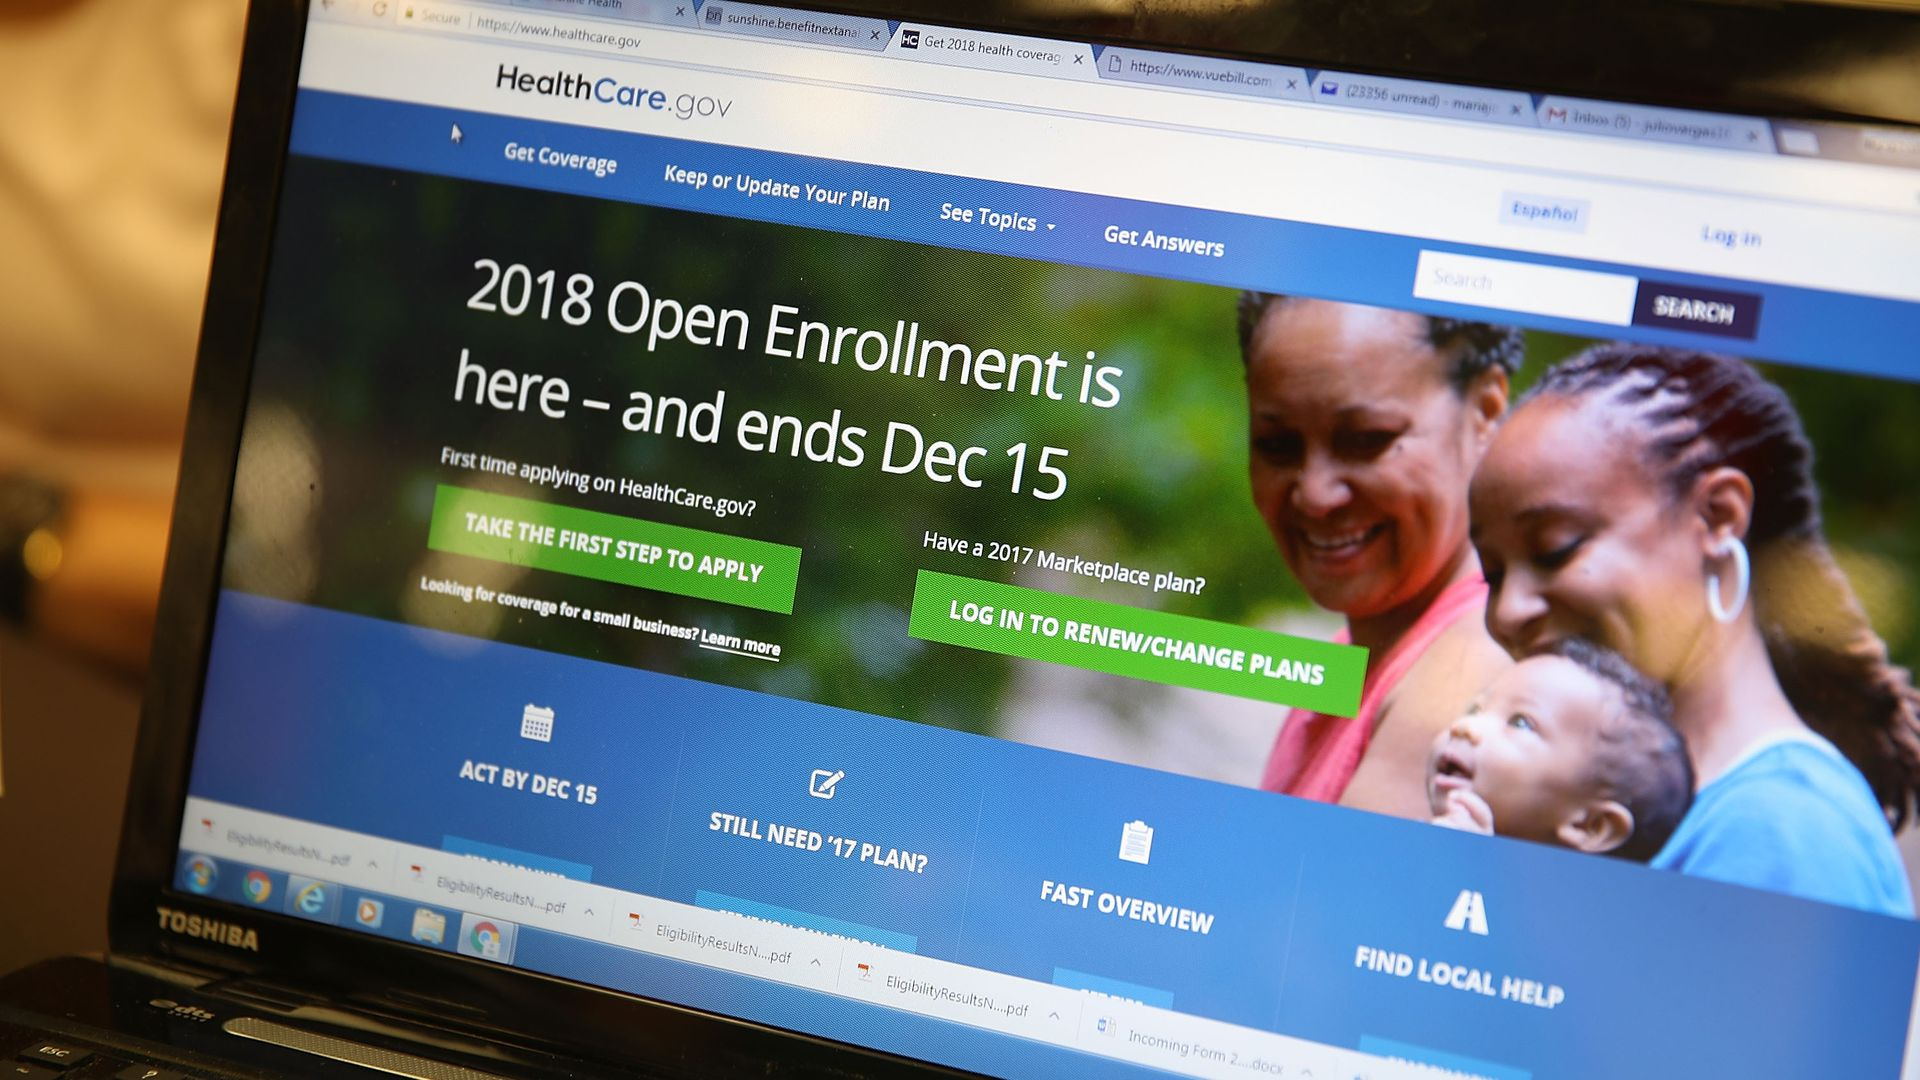 A laptop screen showing the 2018 enrollment page for ACA